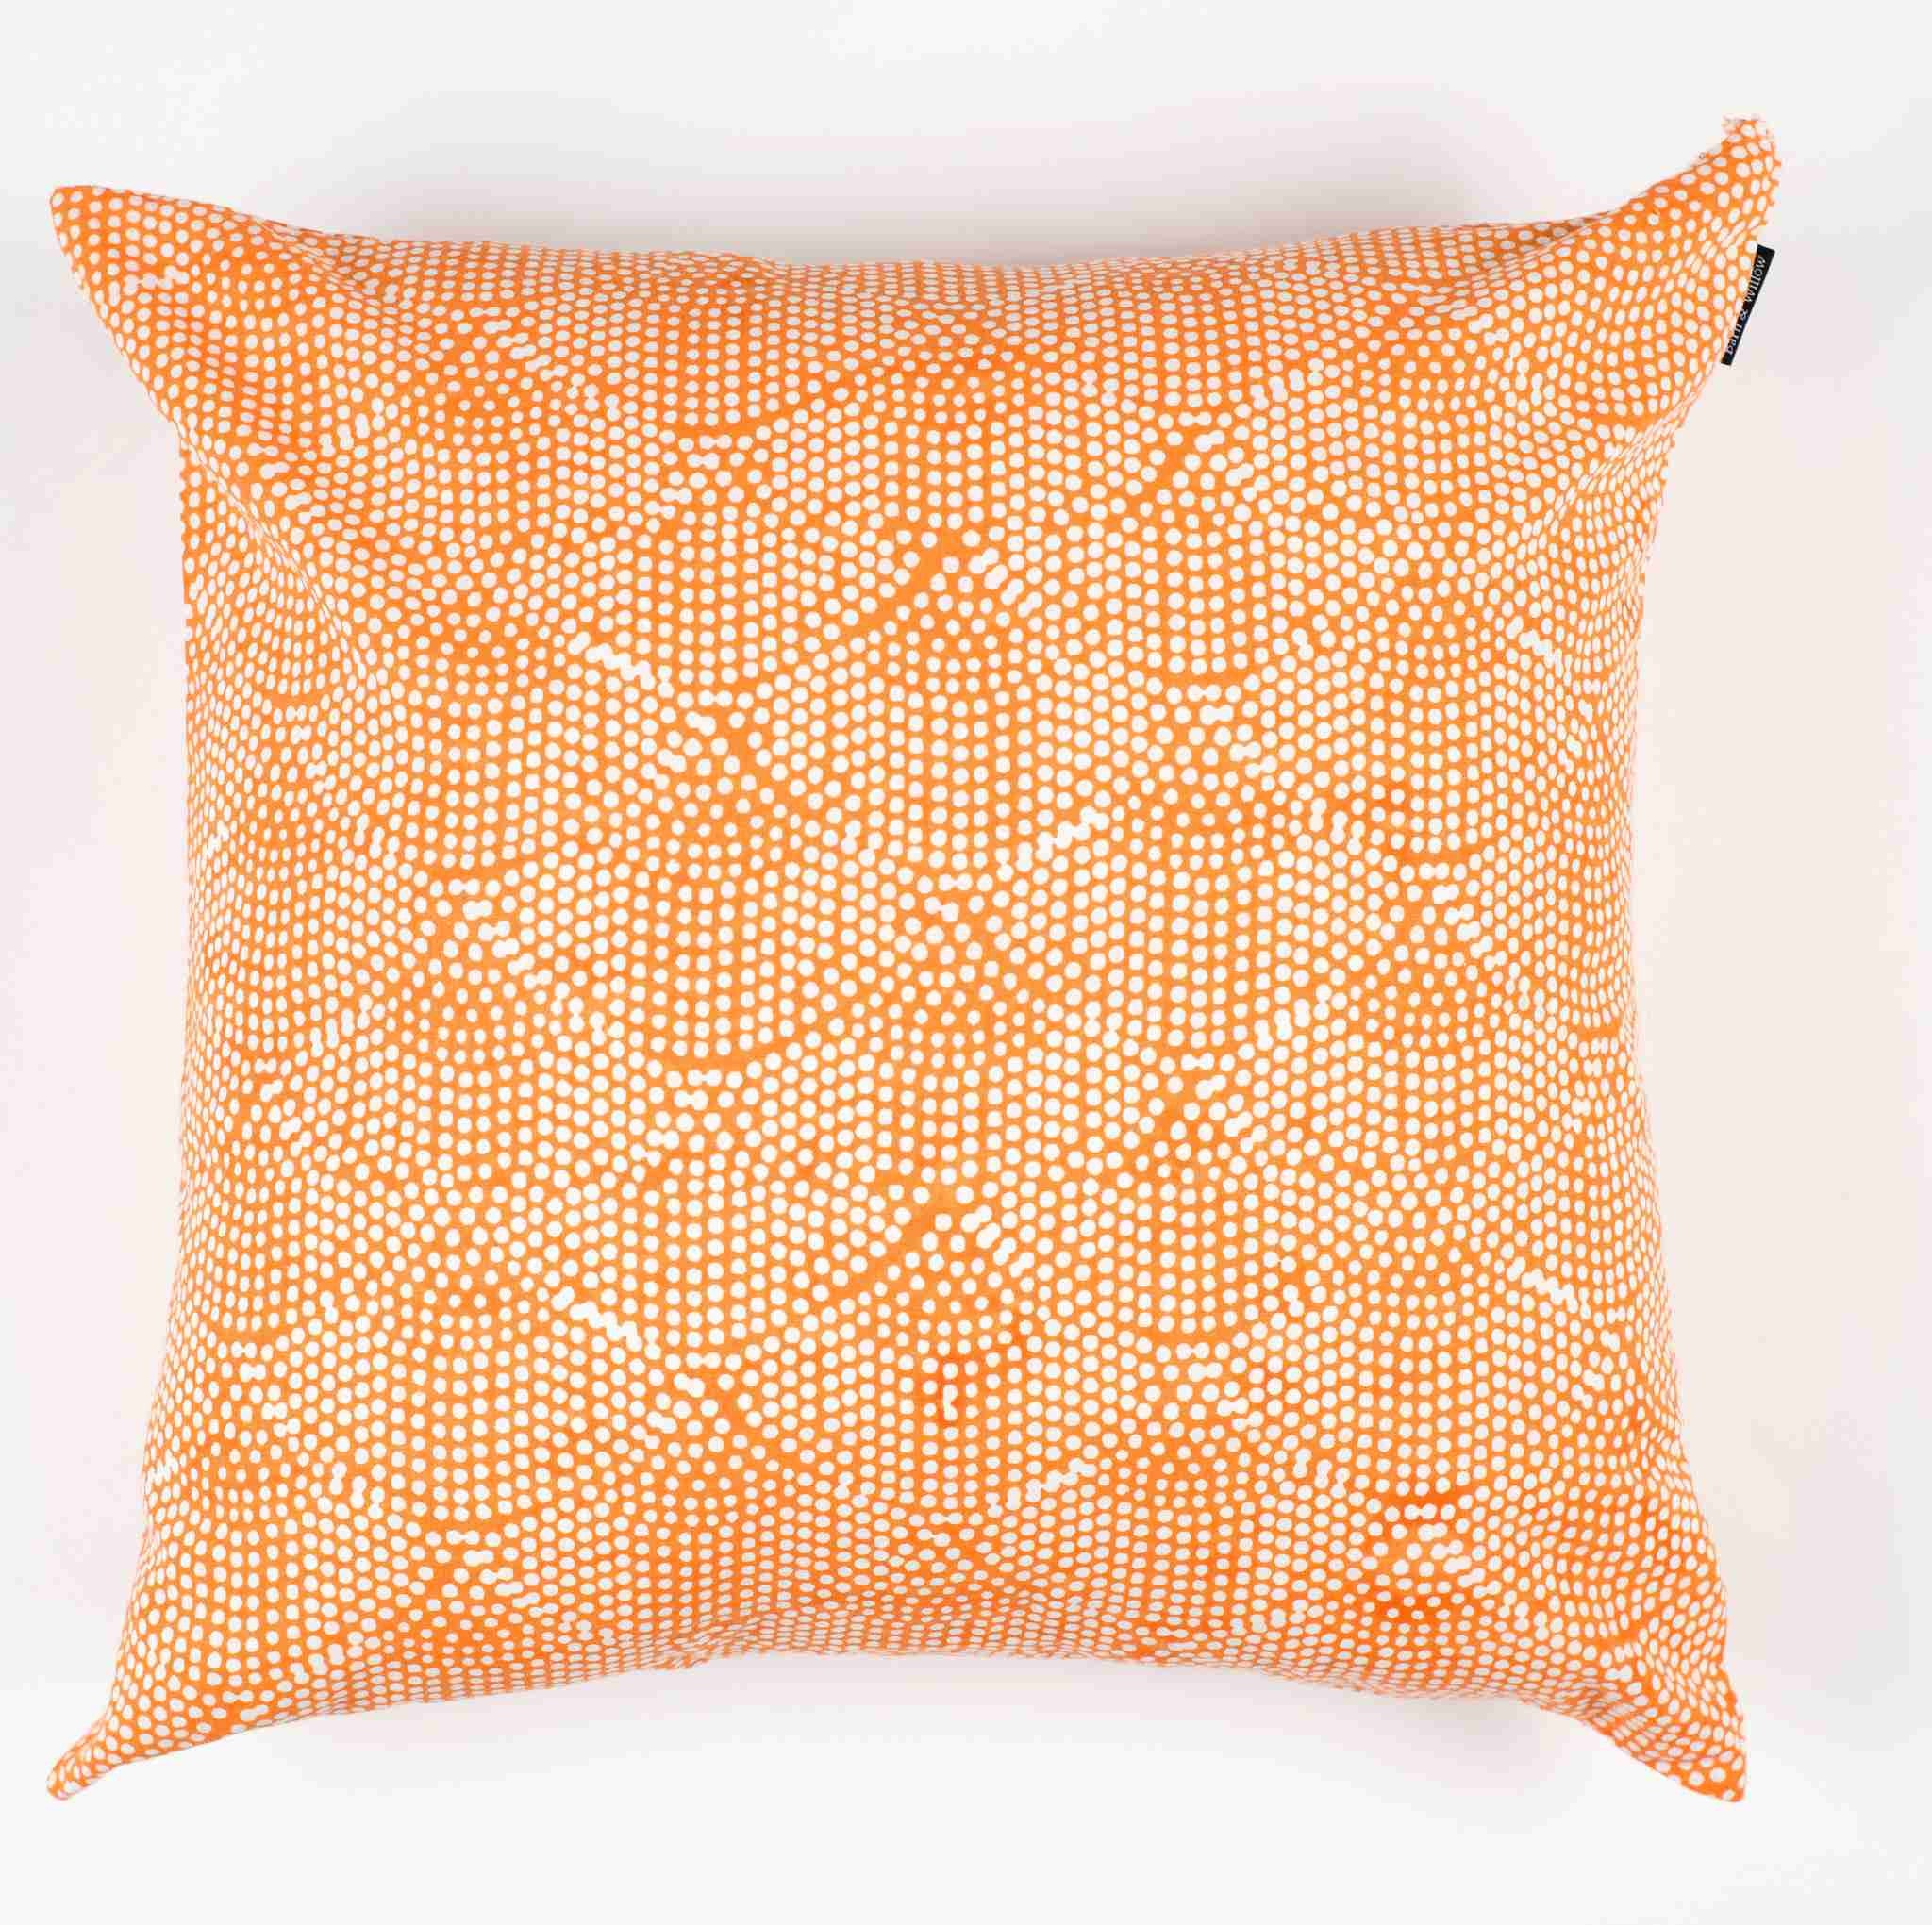 Printed Scallops Pillow Cover – Papaya